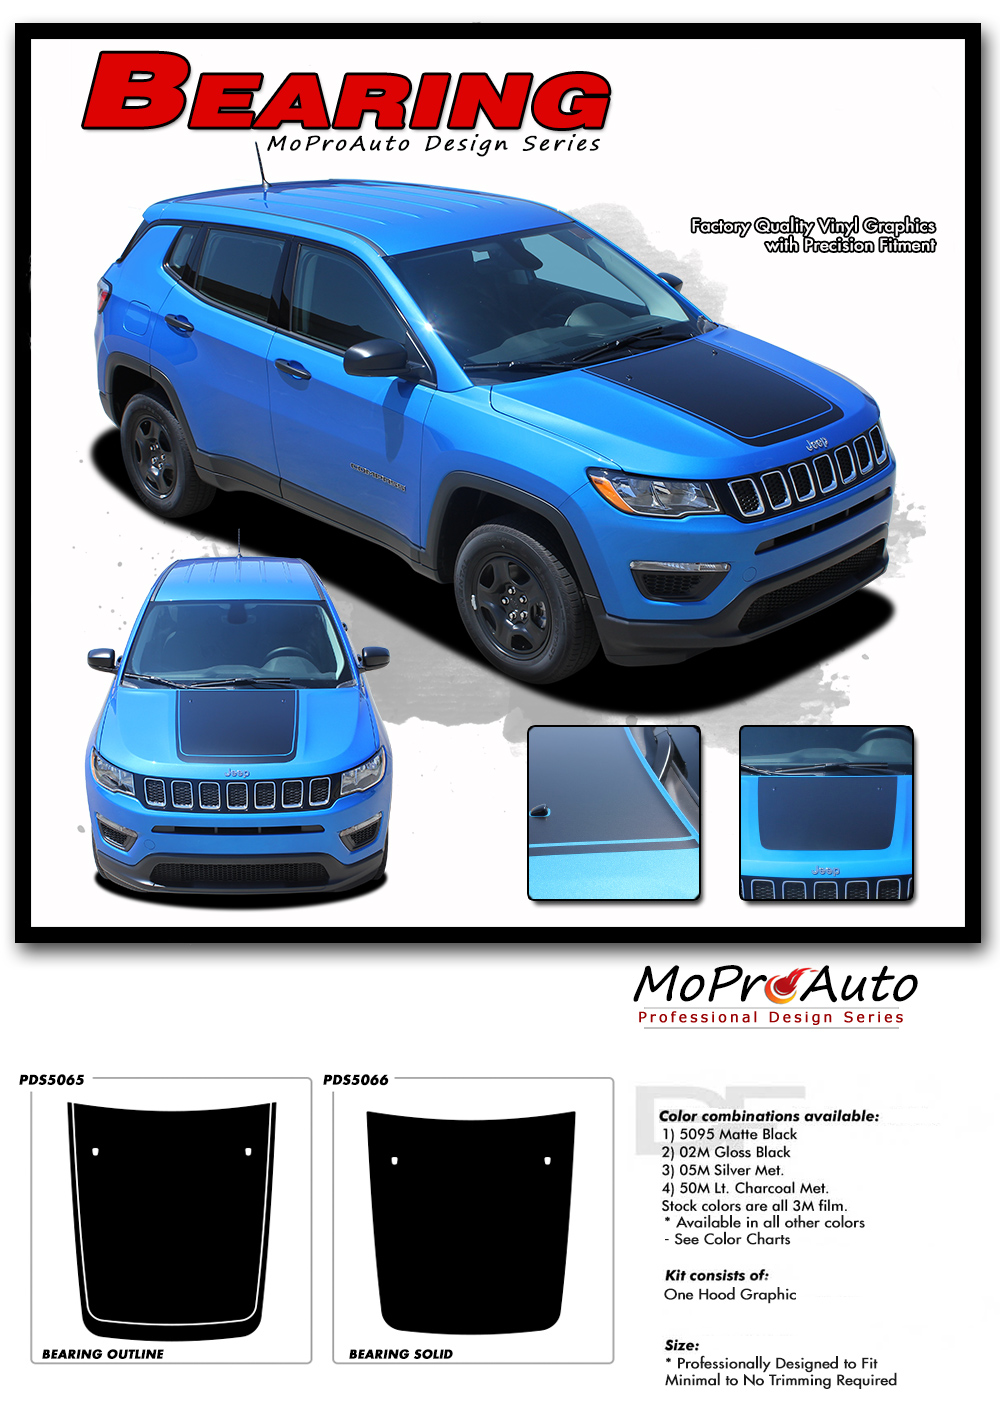 2017, 2018, 2019, 2020 Jeep Compass Vinyl Graphics Decals Stripes - MoProAuto Pro Design Series - Bearing